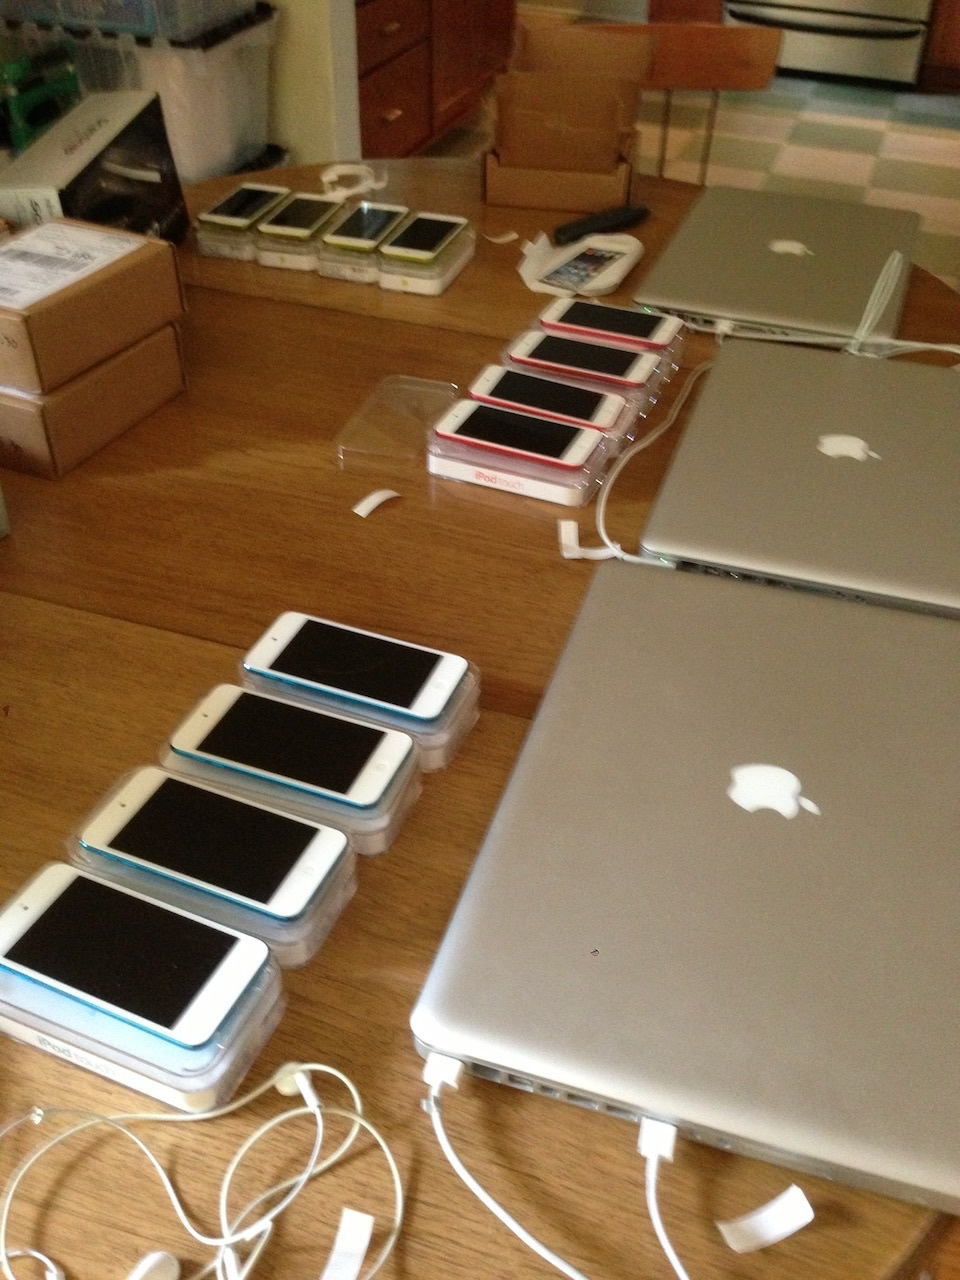 12 iPod touches being provisioned on my dining room table.